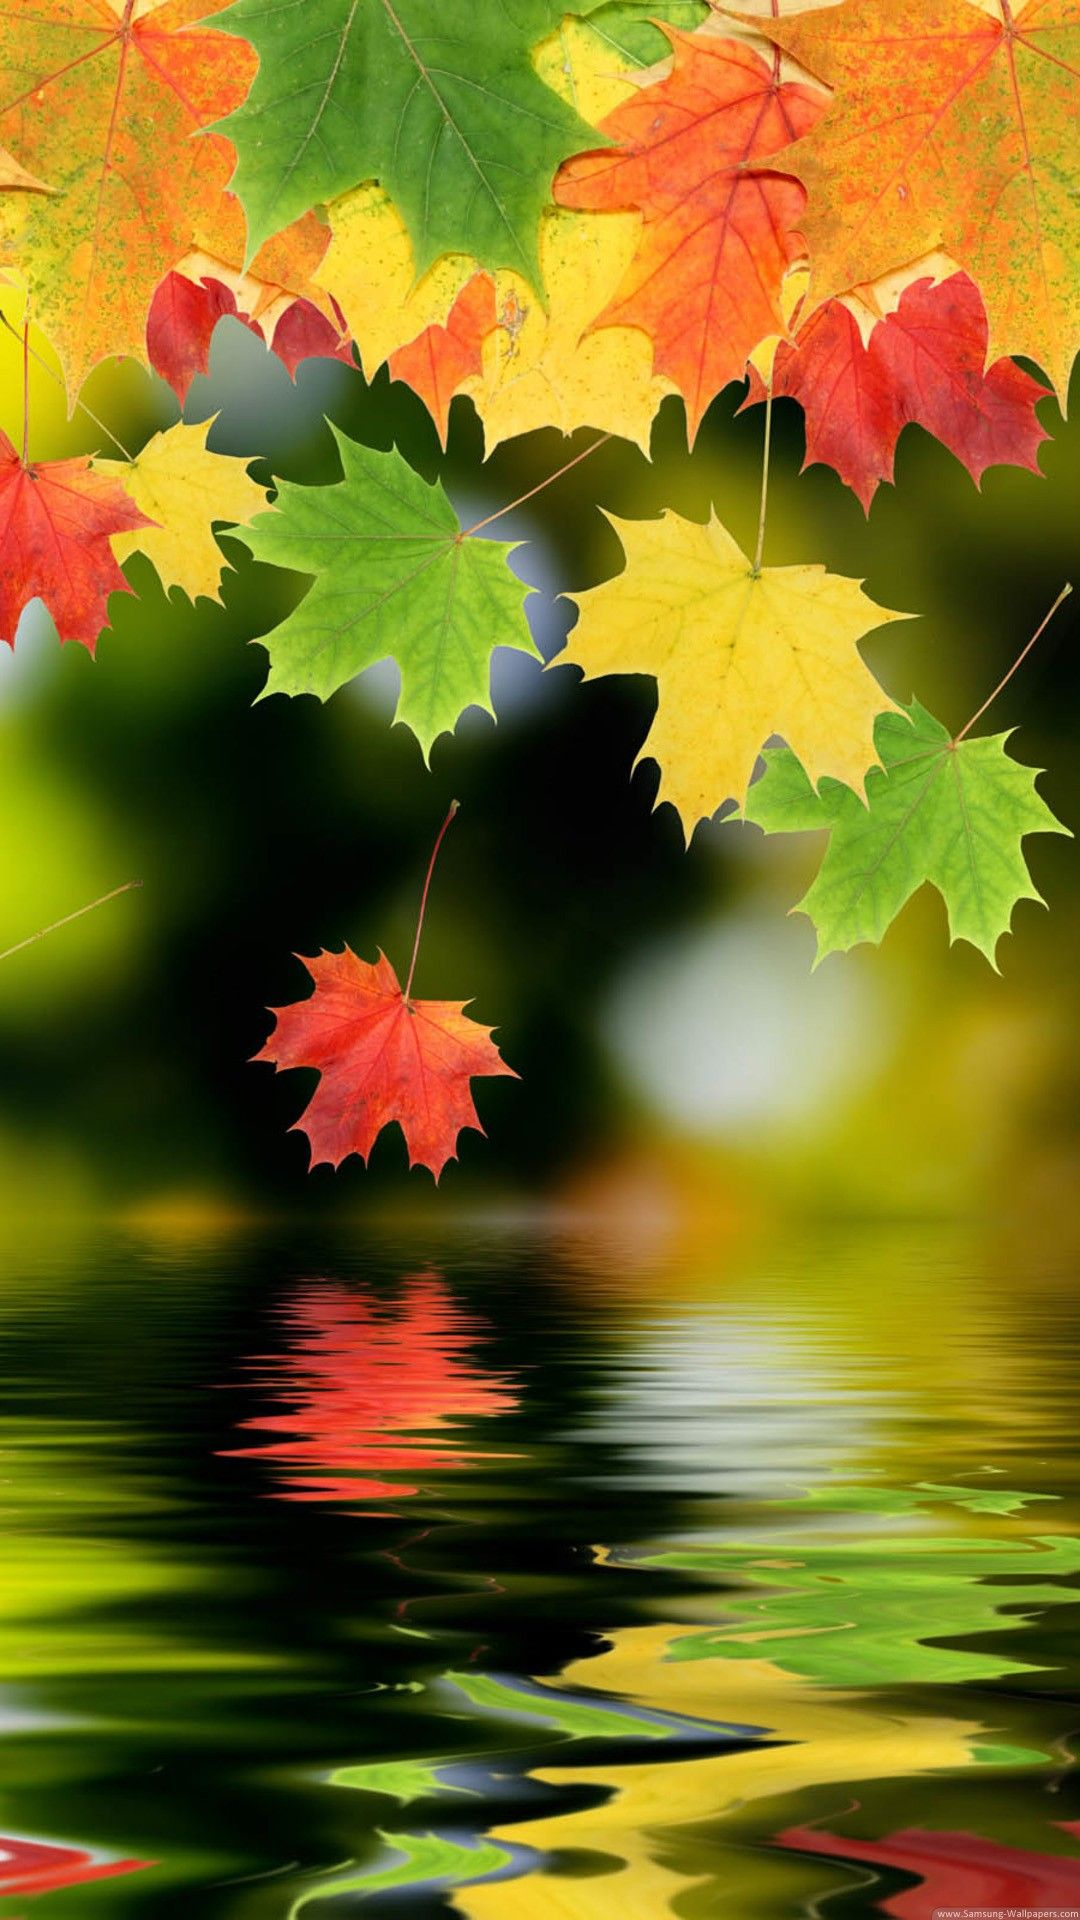 Colorful Autumn Maple Leafs Hd Android And Iphone Wallpaper Background And Lockscreen 4k Check More At Https Pho Fall Wallpaper Nature Wallpaper S5 Wallpaper